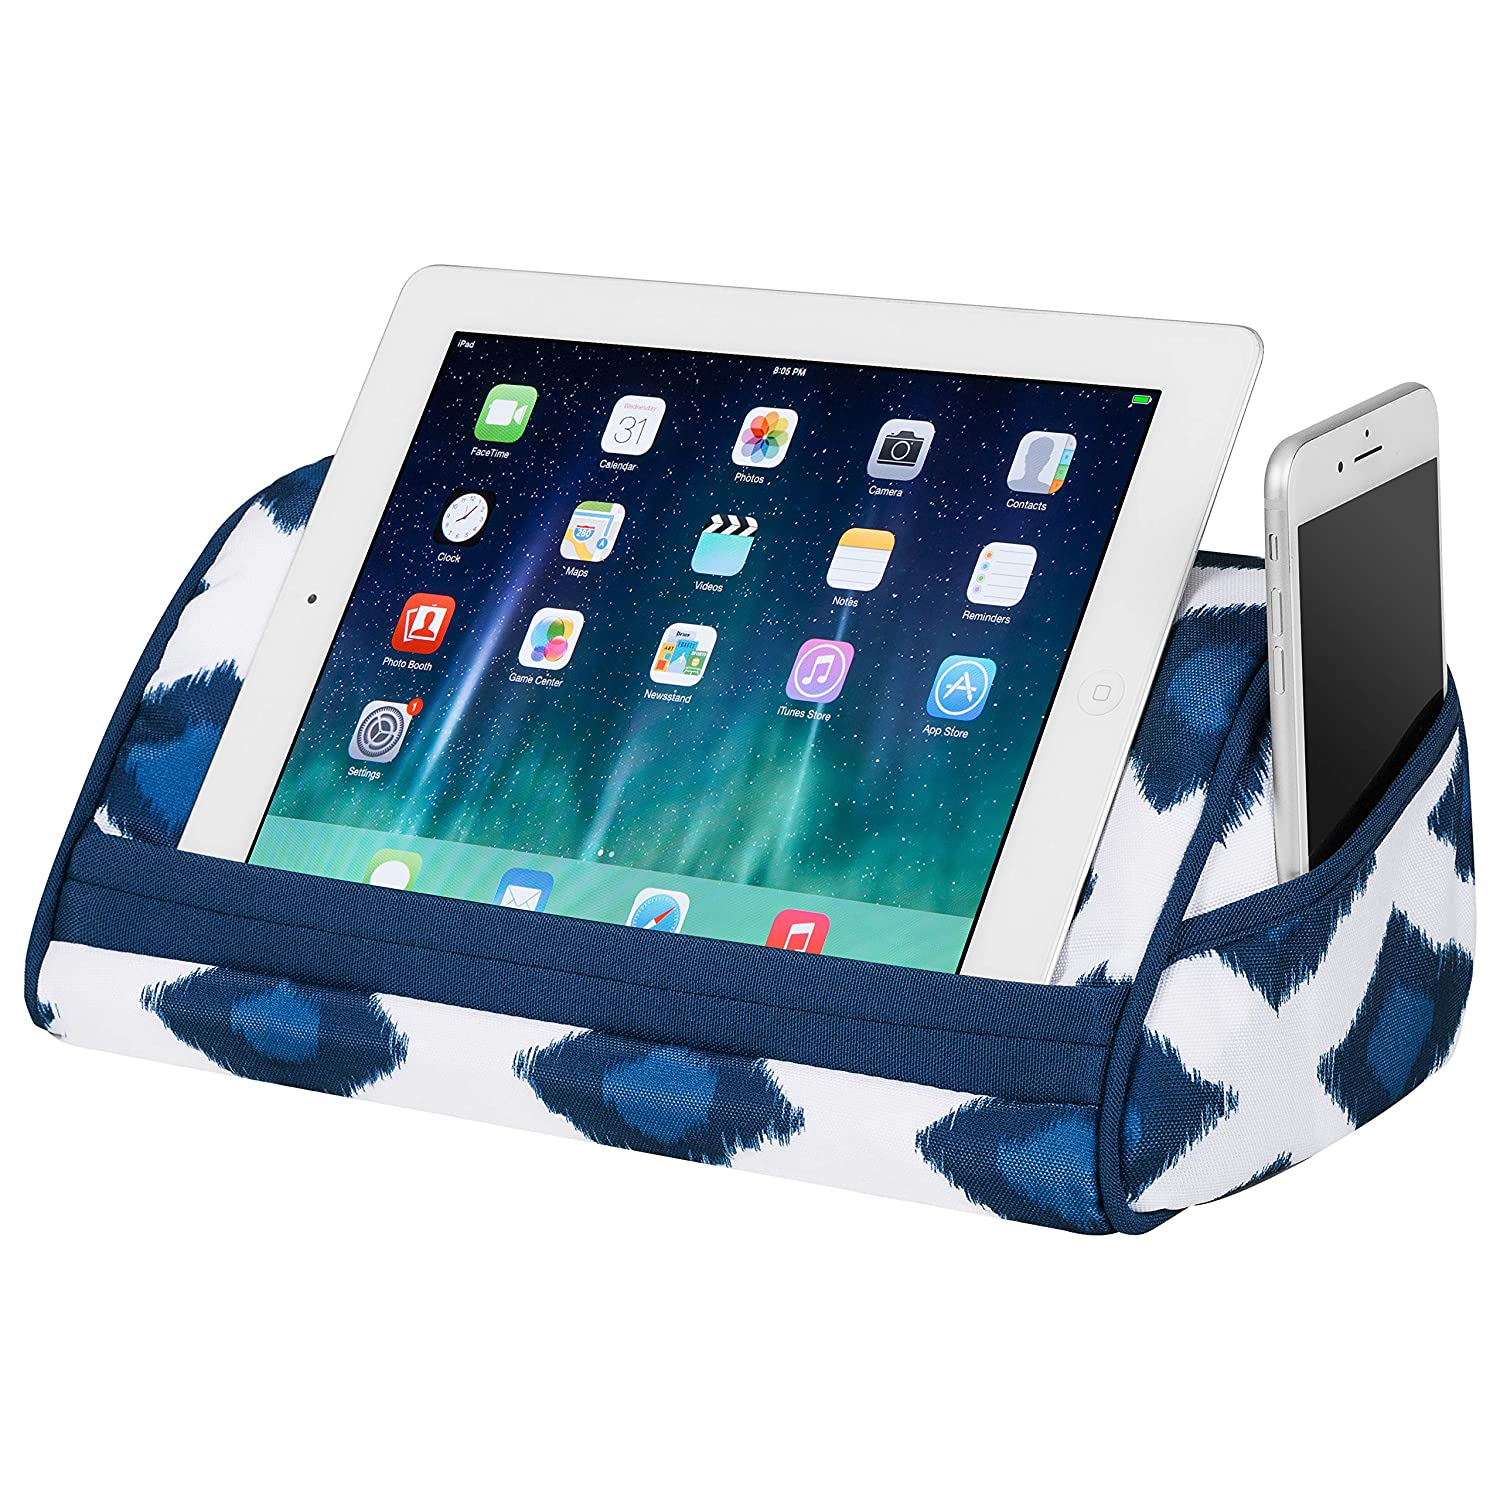 LapGear Designer Tablet Pillow//Tablet Stand - Style #35538 Fits up to 10.1 Tablet Gray Argyle